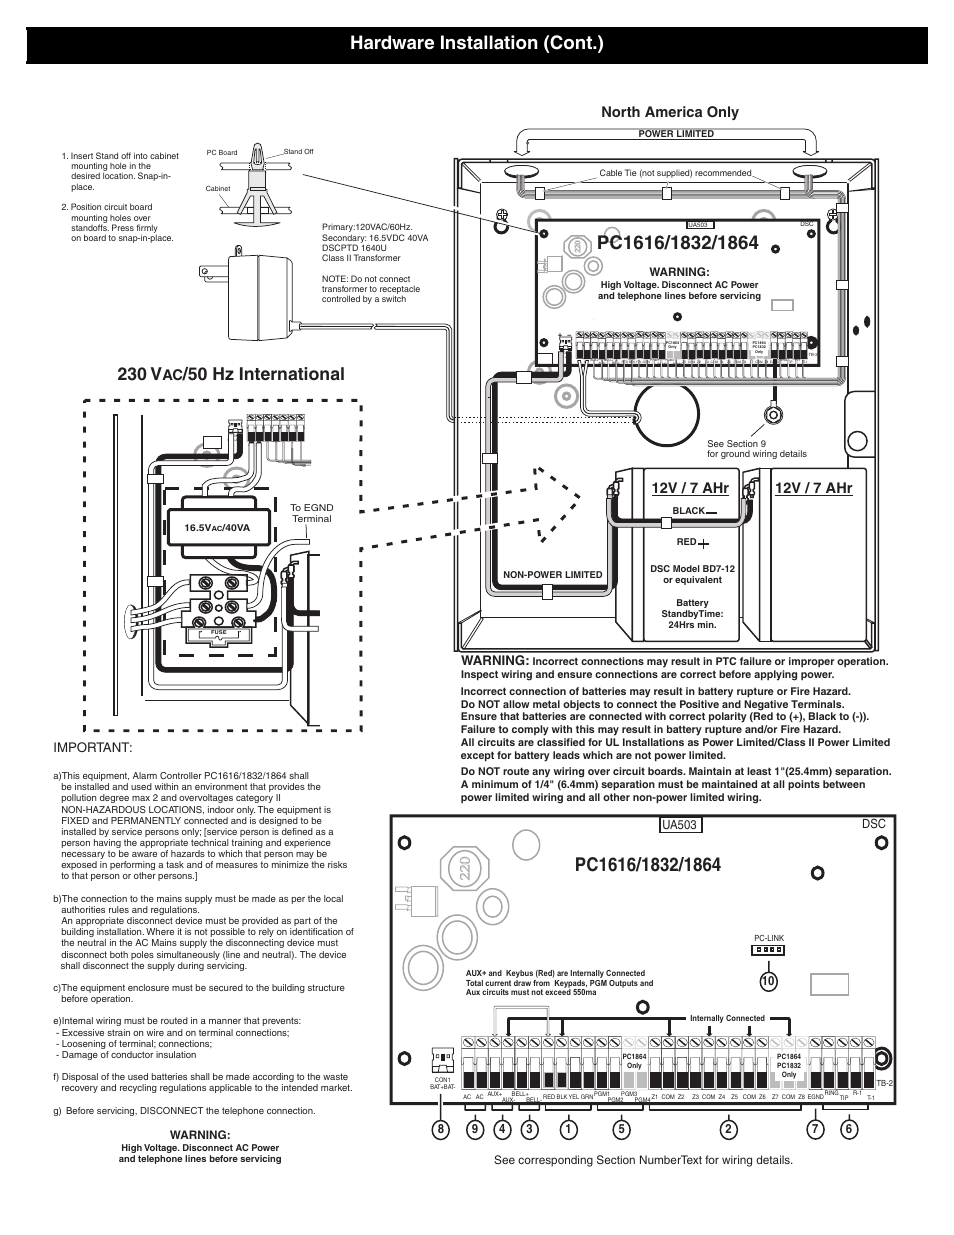 12v / 7 ahr, 12v / 7 ahr north america only | DSC POWERSERIES PC1616 User  Manual | Page 3 / 16